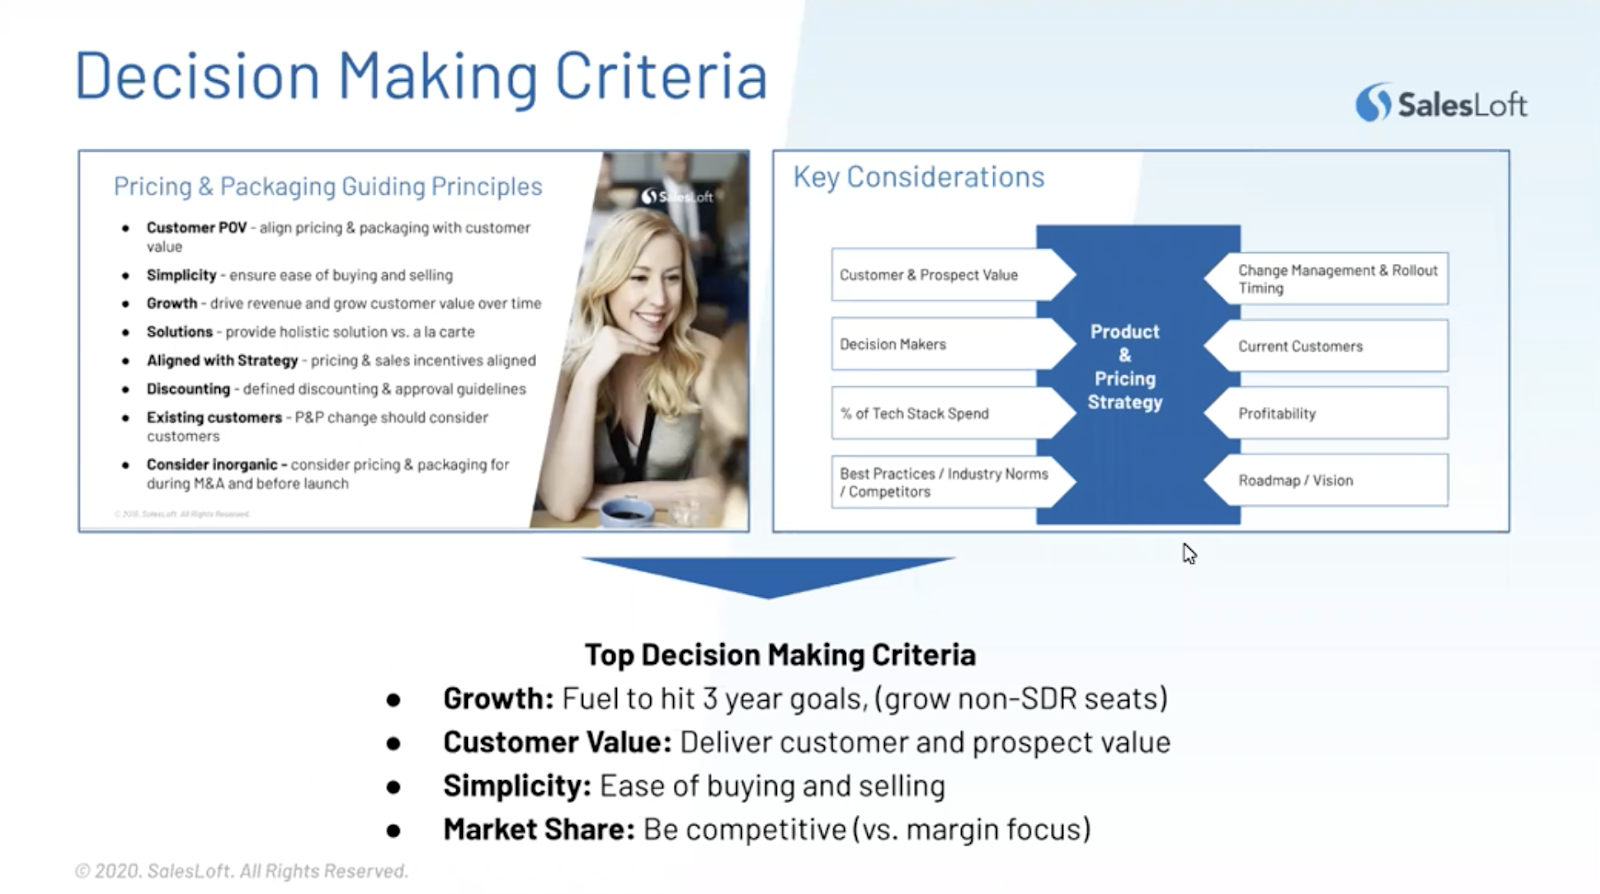 Top decision making criteria: Growth, customer value, simplicity, market share.